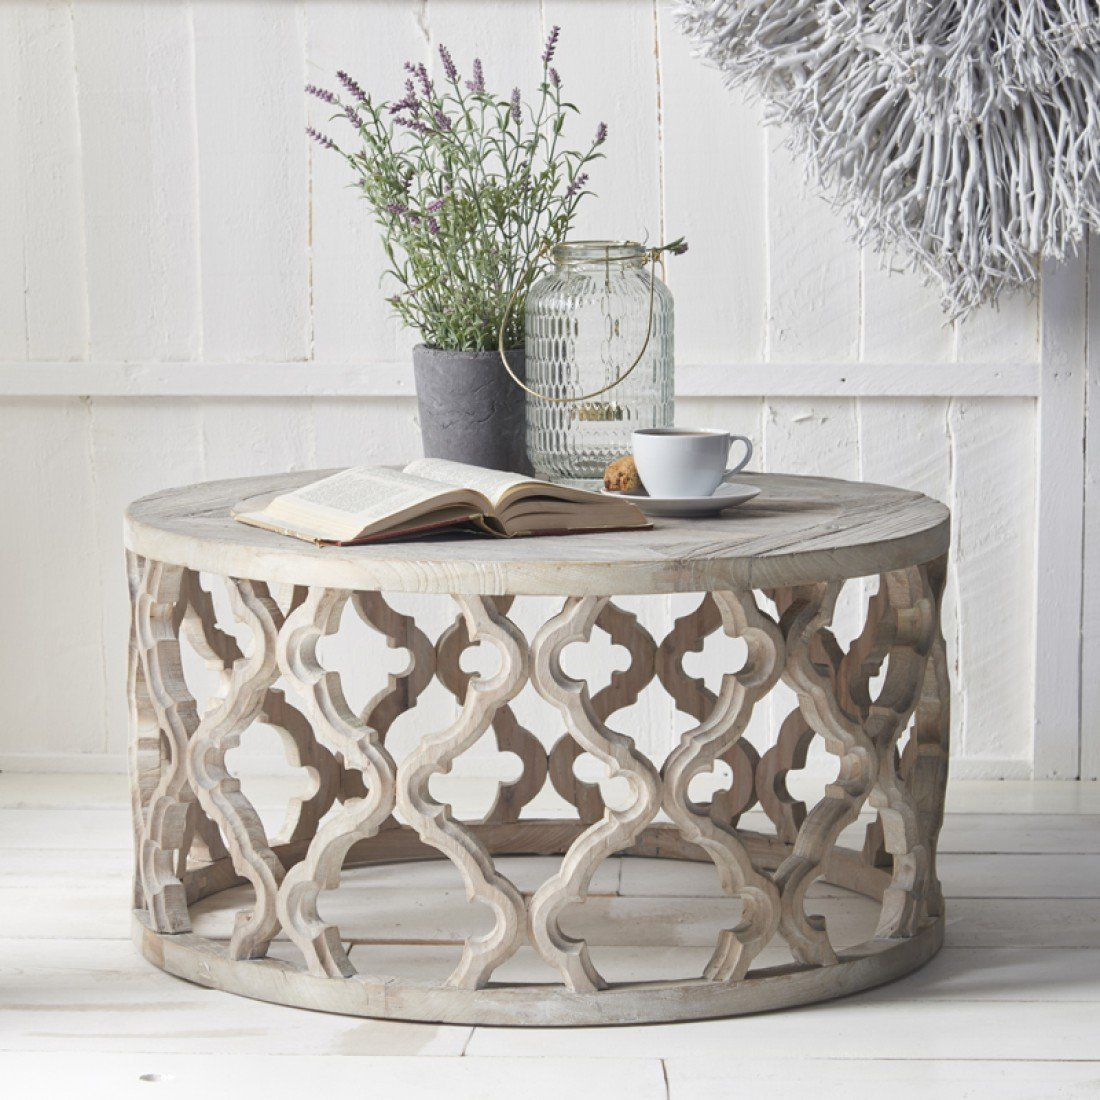 Fretwork Coffee Table.Round Fretwork Coffee Table Coffee Tables